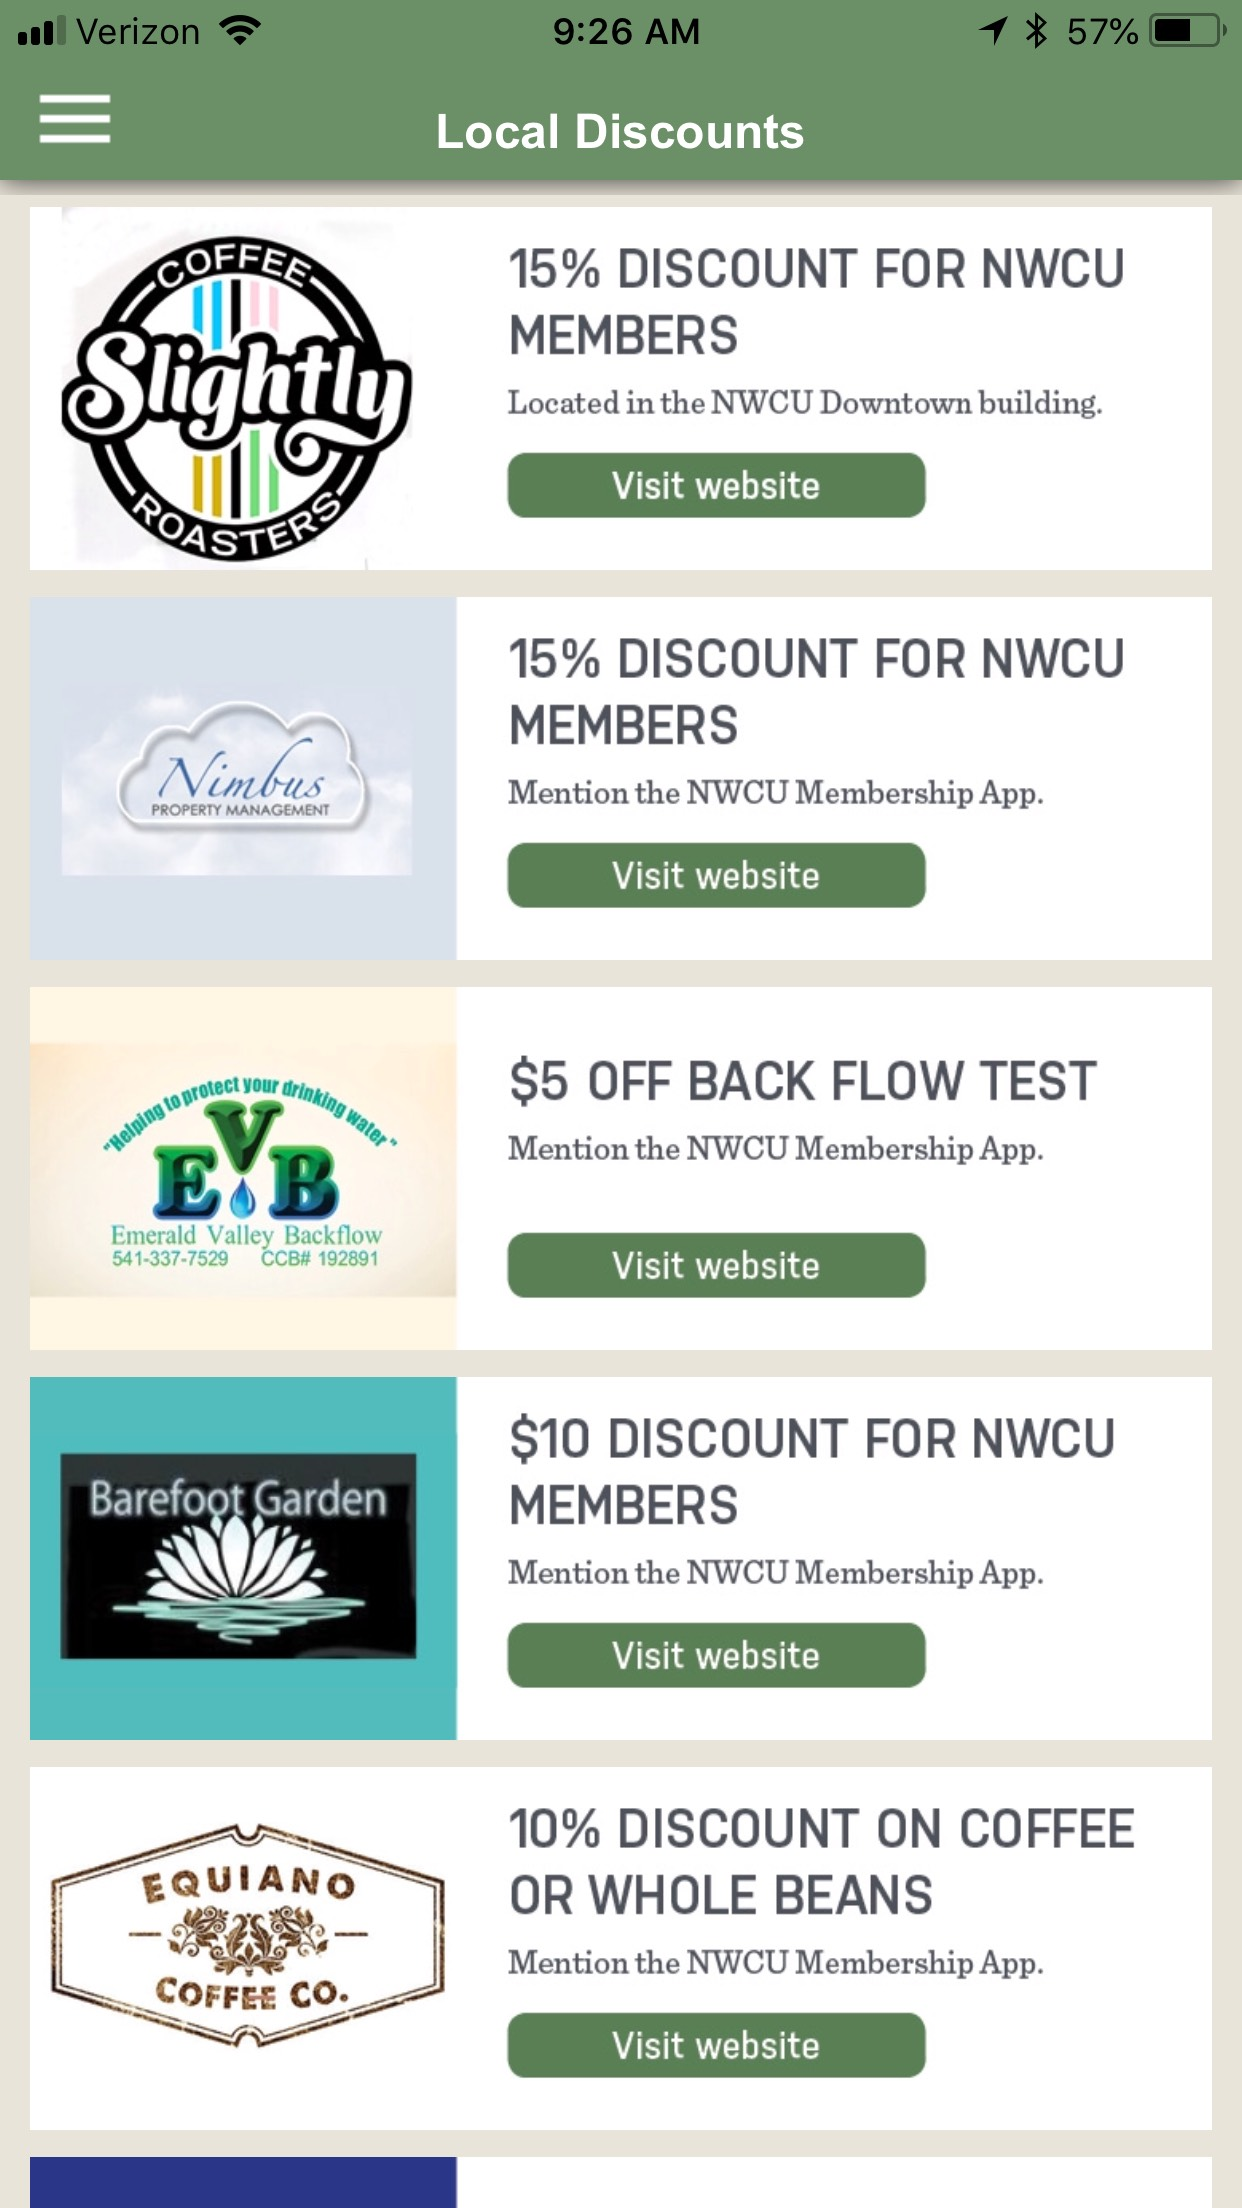 NWCU Member benefits app Local Discounts page